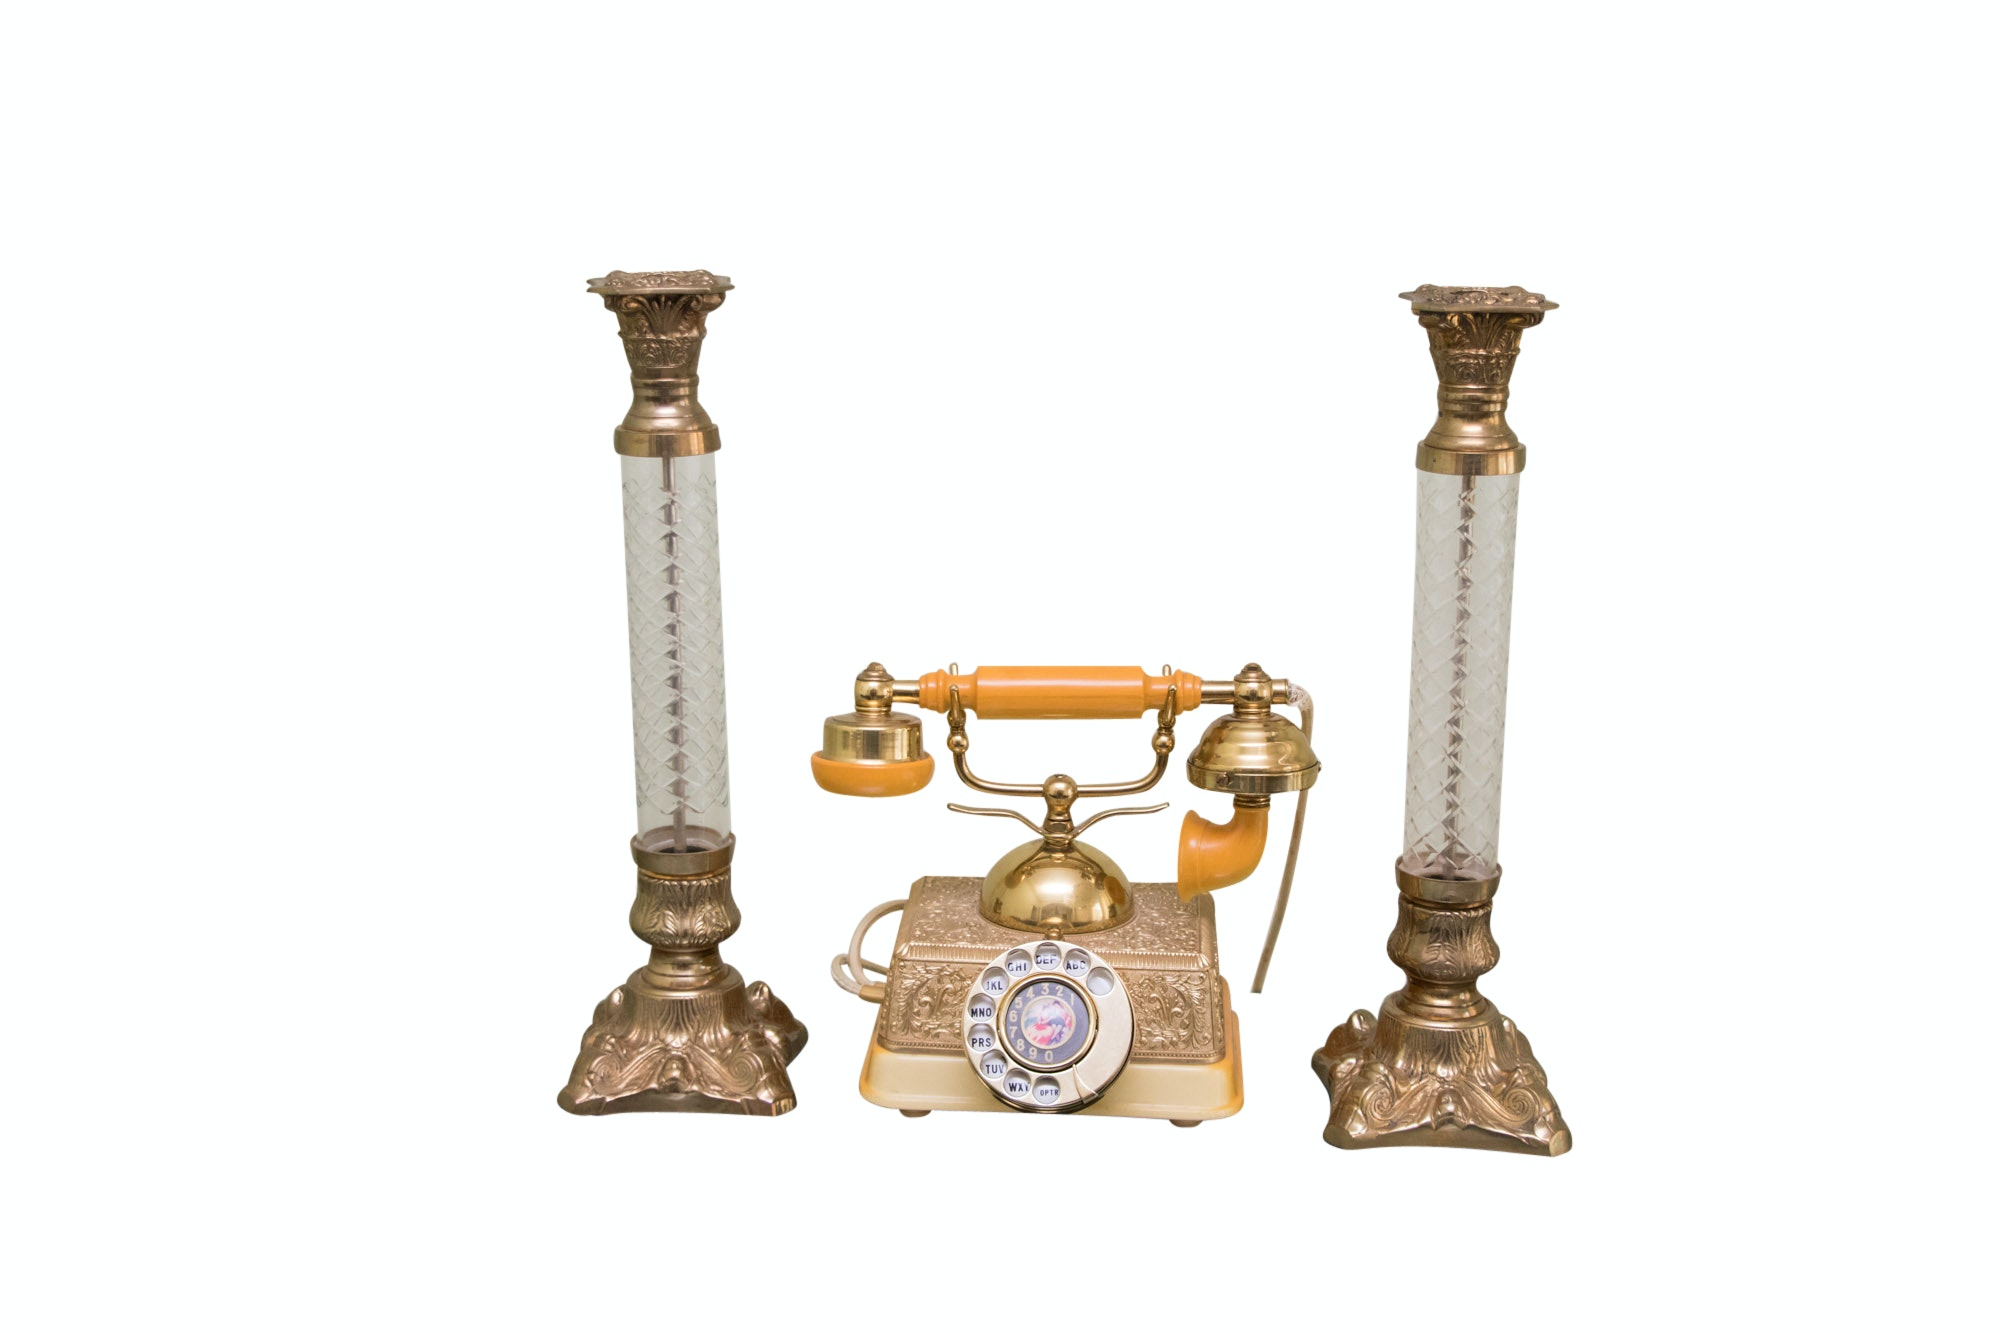 French Style Rotary Dial Phone with Pressed Glass and Metal Candlesticks